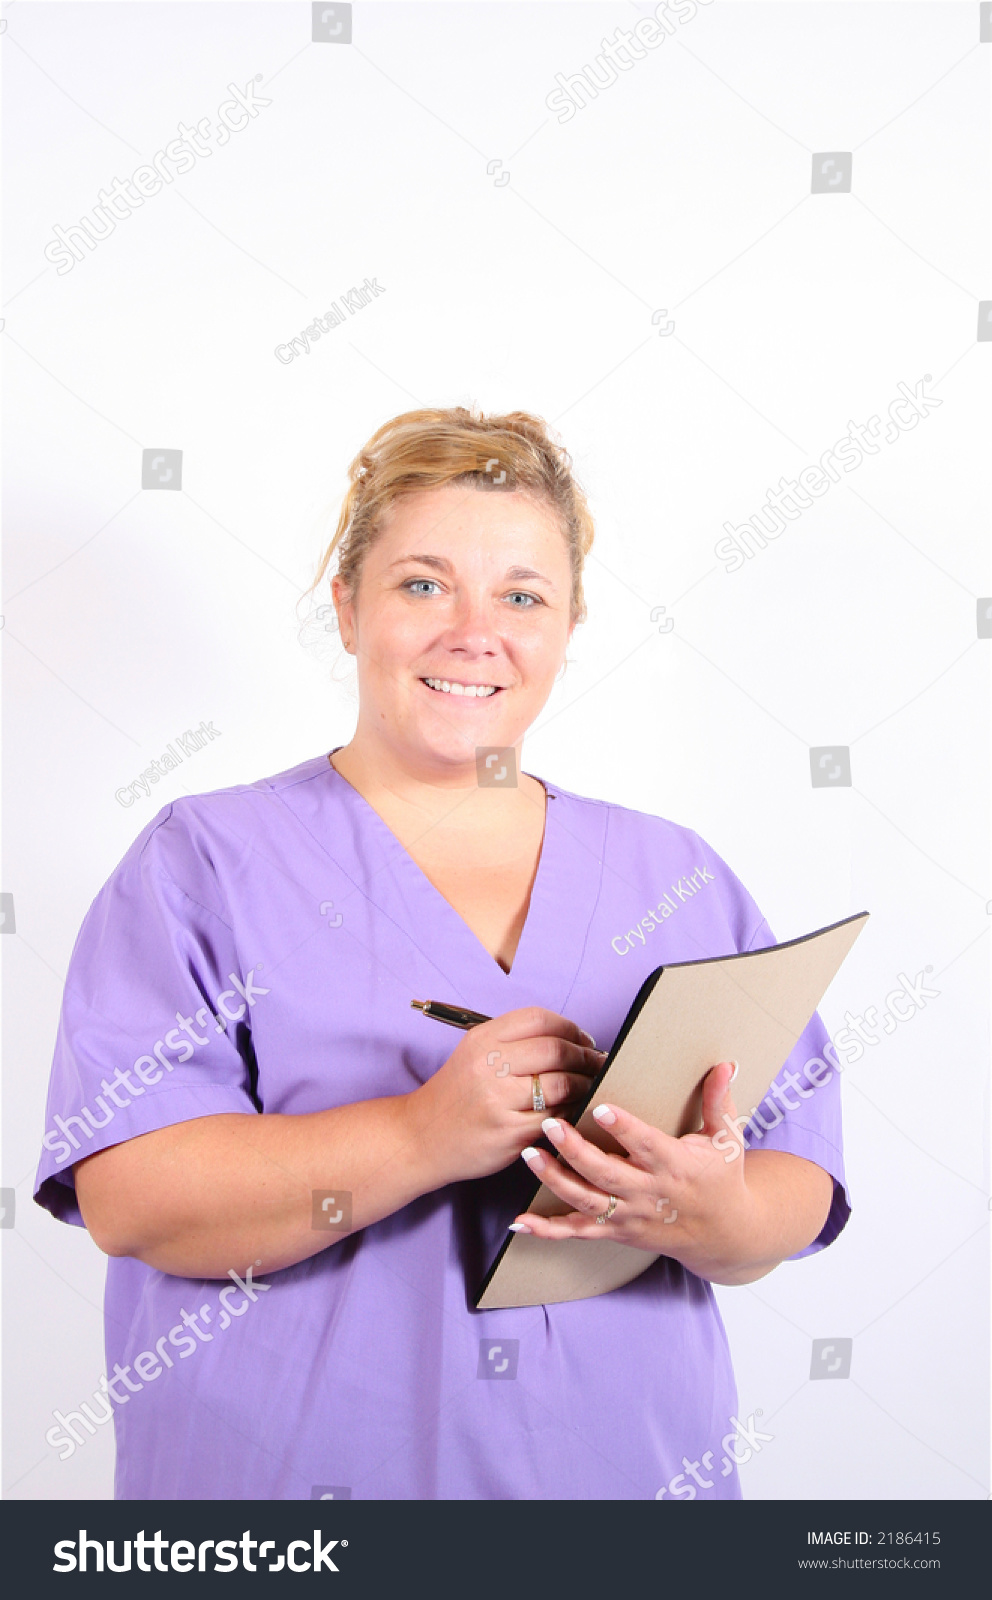 taking a patients history essay Patient assessment is described as an indicator in standard 3: health history/interview and physical examination using a patient's history and presenting.